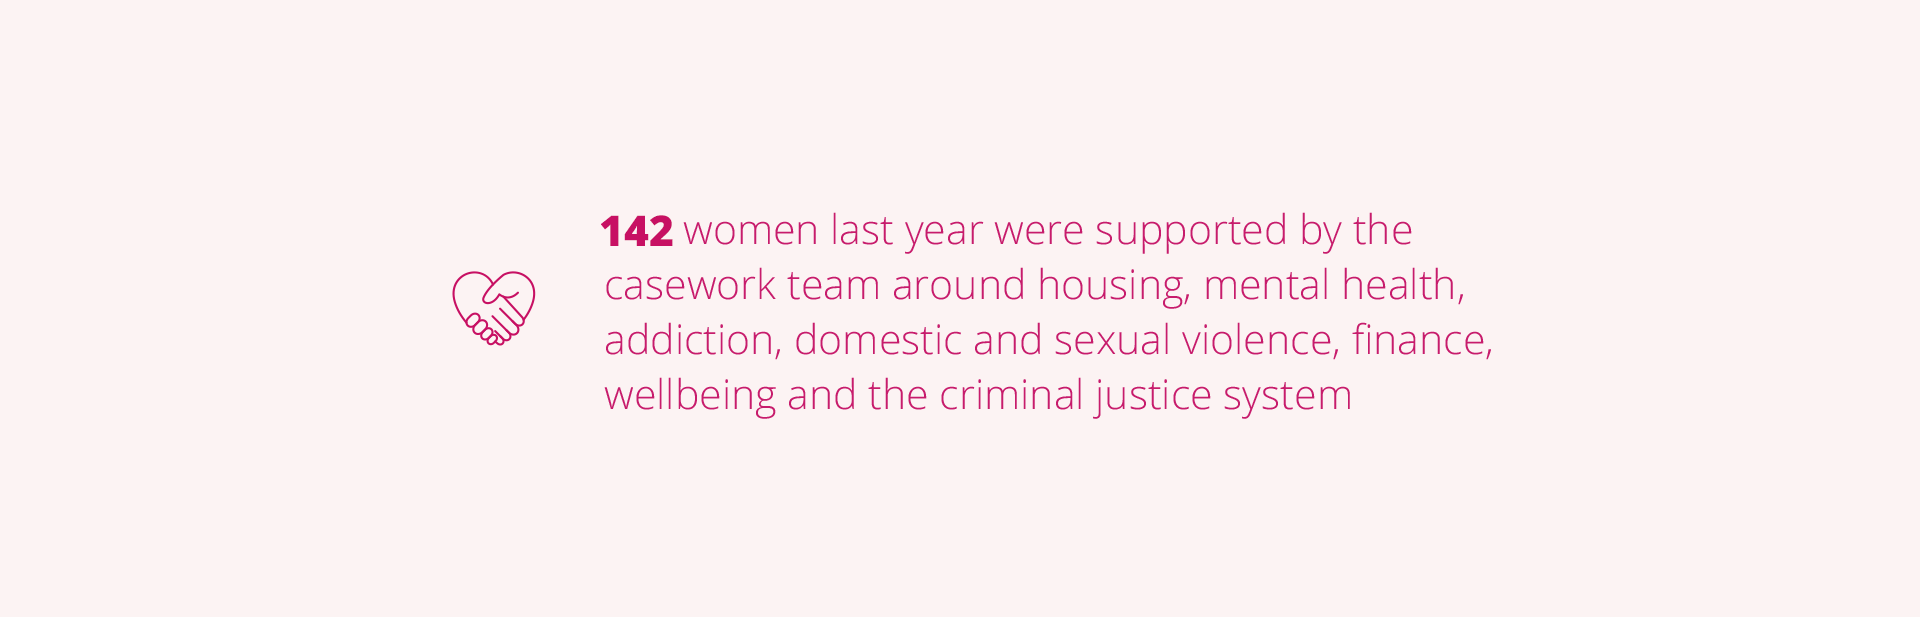 142 women last year were supported by the casework team around housing, mental health, addiction, sexual and domestic violence, finance, wellbeing and the criminal justice system.